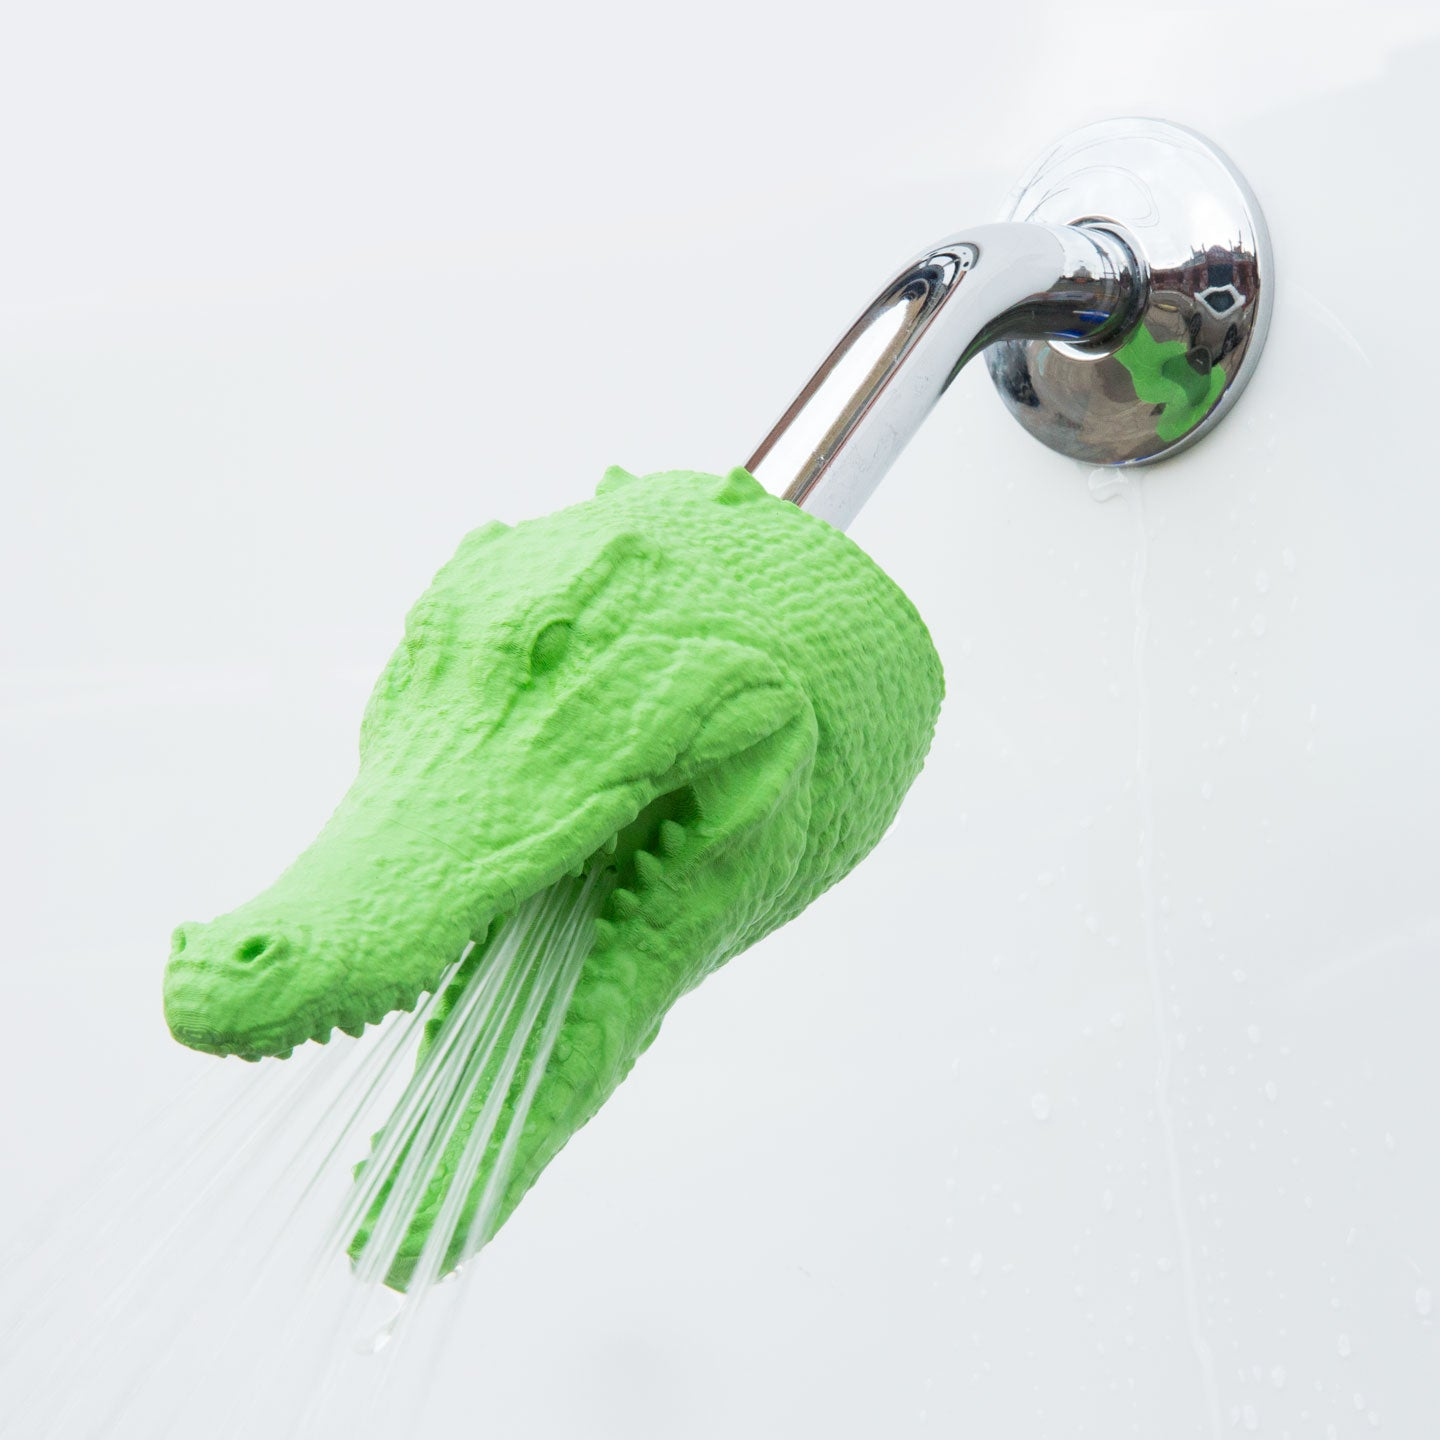 Alligator Showerhead